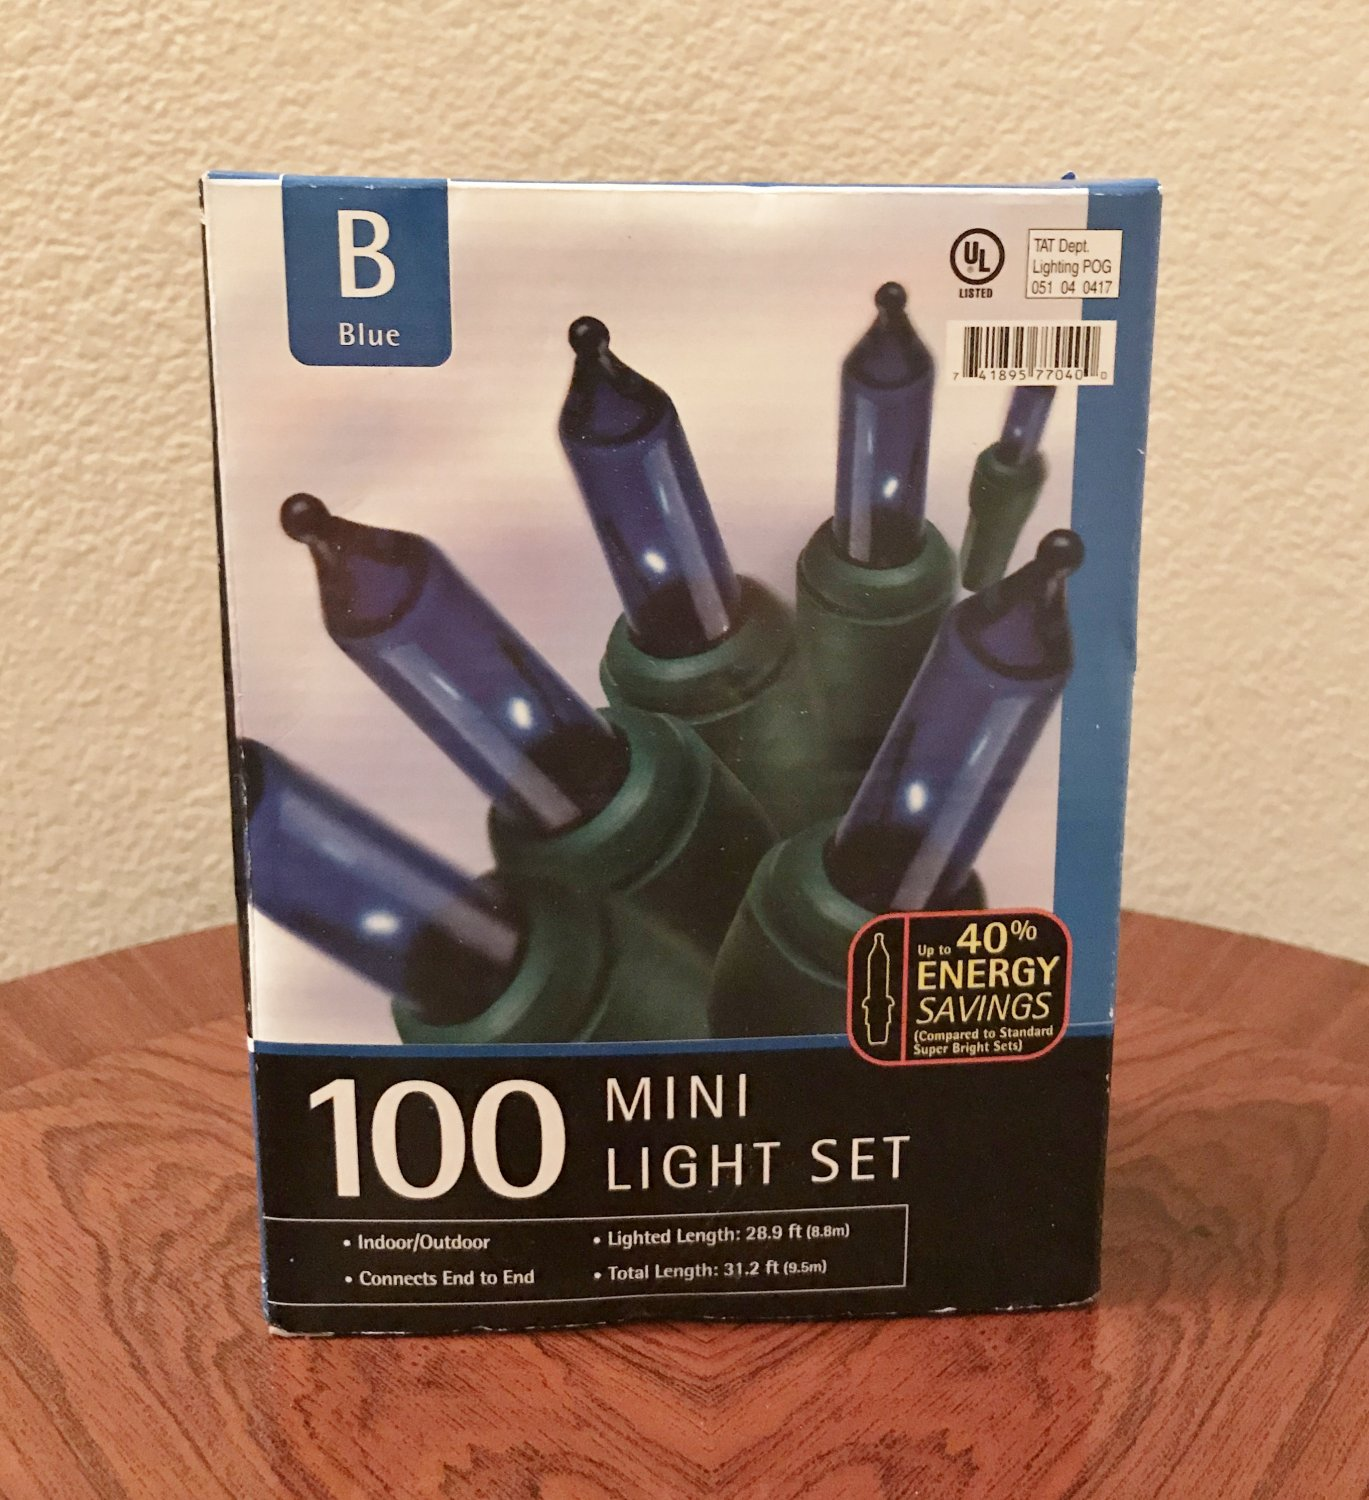 NIB 100 MINI LIGHT SET Indoor/Outdoor Christmas BLUE 31.2 FT String Home Decor